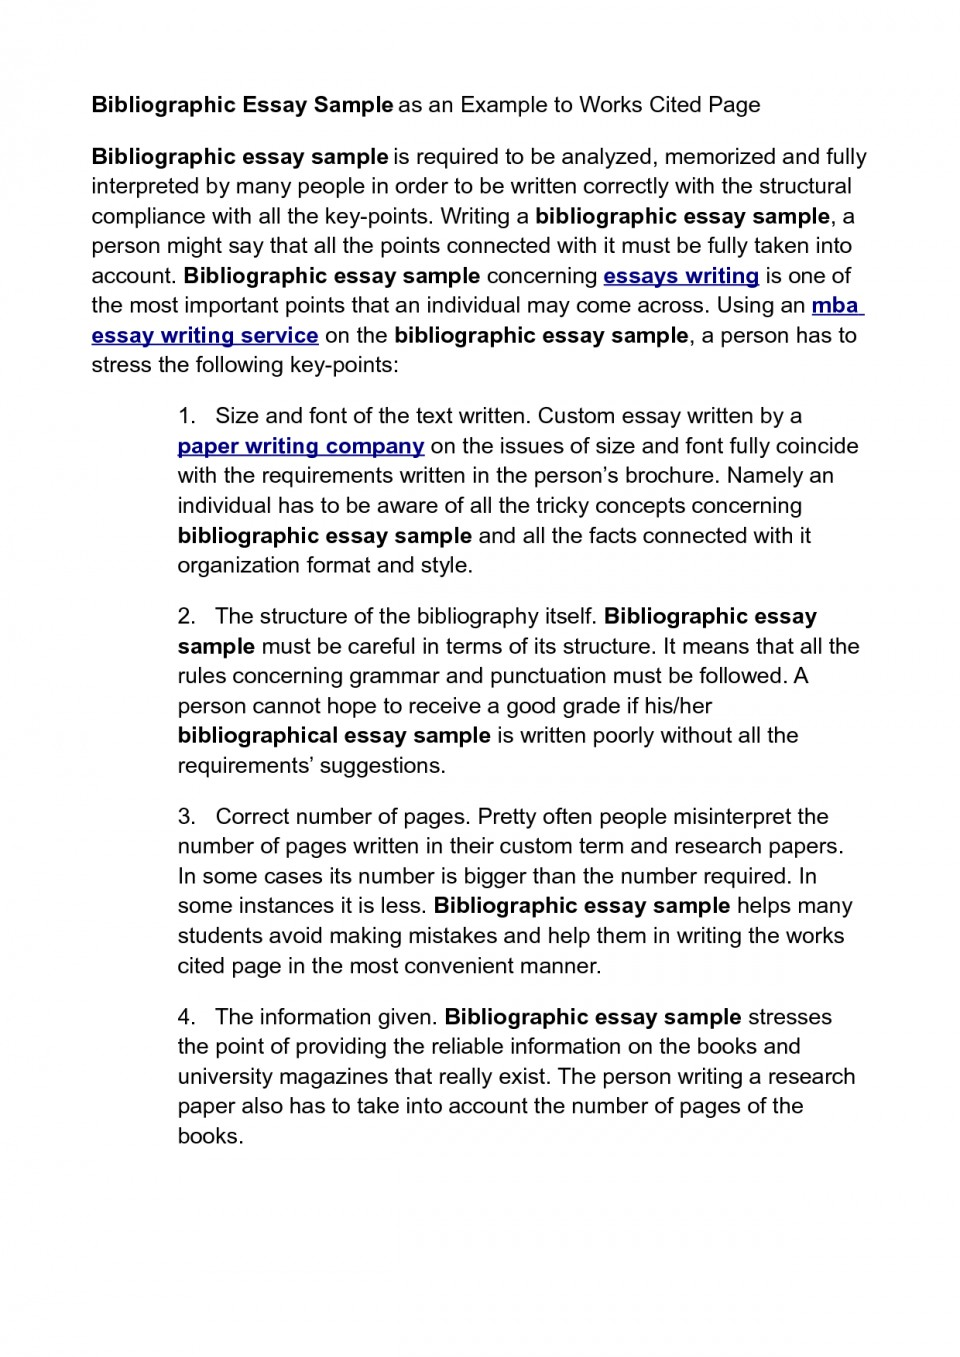 018 How To Cite An Essay Example Sample Persuasive With Works Cited Of Mla L Archaicawful In A Textbook Within Book Apa 8 960